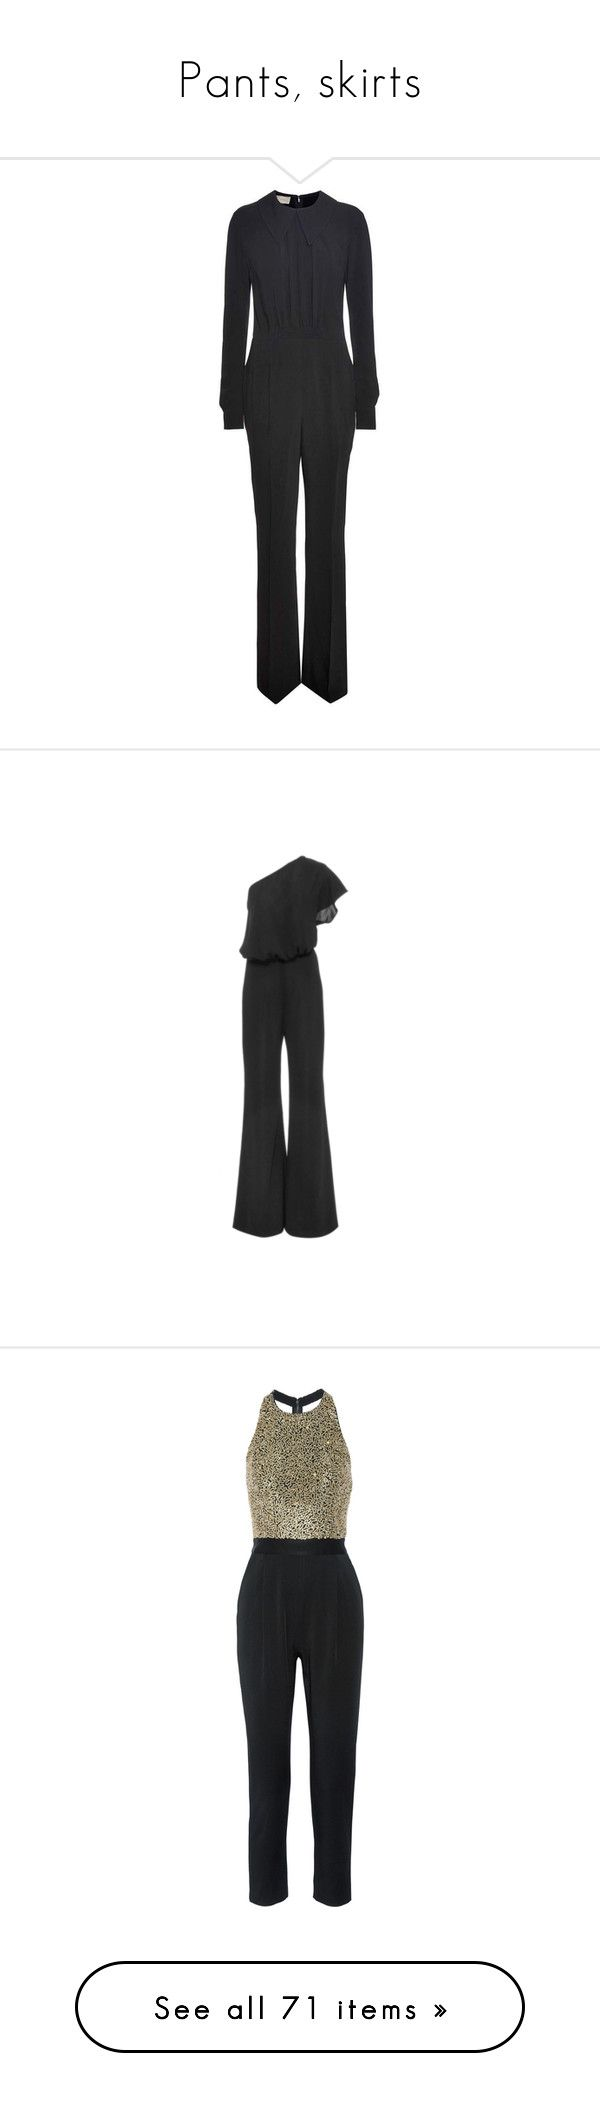 """Pants, skirts"" by bliznec ❤ liked on Polyvore featuring jumpsuits, jump suit, long sleeve jump suit, one sleeve jumpsuit, one shoulder jumpsuit, long sleeve jumpsuit, satin jumpsuit, embellished jumpsuit, black and loose jumpsuit"